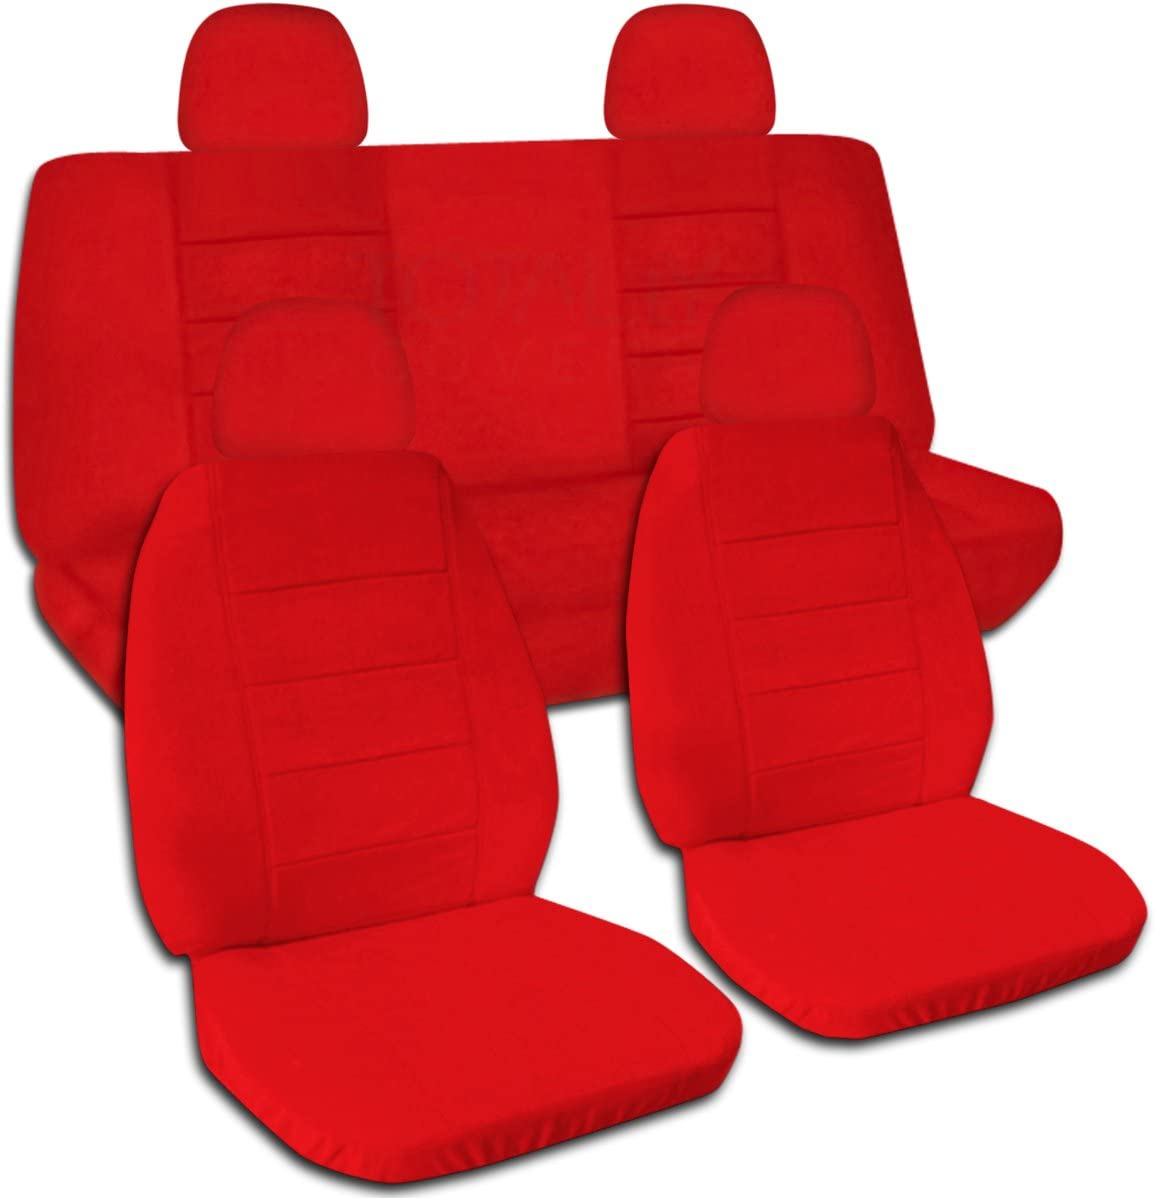 Totally Covers Solid Color Car Seat Covers w 4 (2 Front + 2 Rear) Headrest Covers: Red - Universal Fit - Full Set - Buckets & Bench - Option for Airbag/Seat Belt/Armrest/Lever/Split Compatible